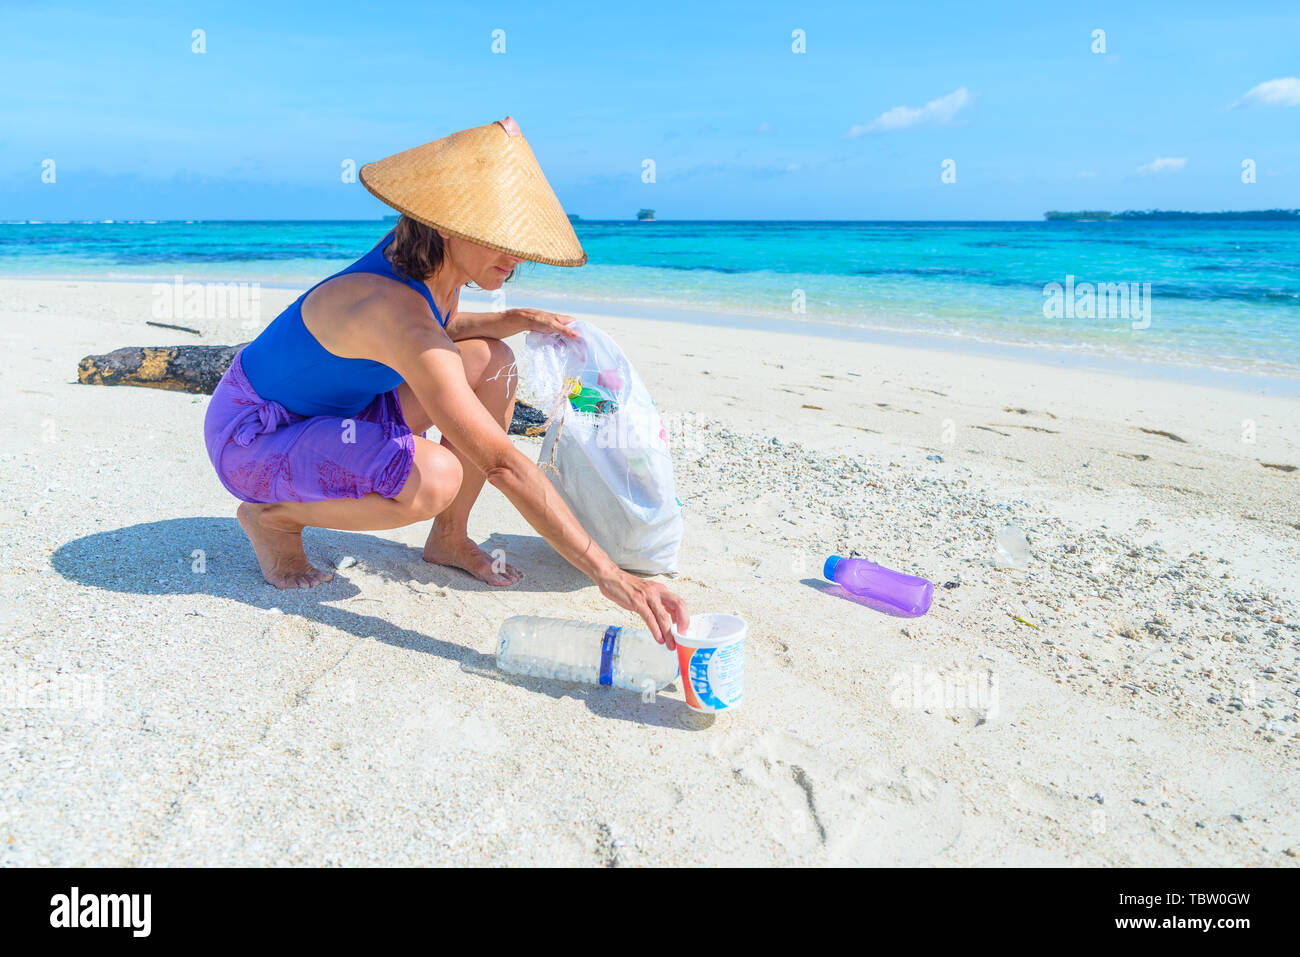 Woman collecting plastic bottles on beautiful tropical beach, turquoise sea, sunny day, recycling rubbish concept, environmental protection. - Stock Image